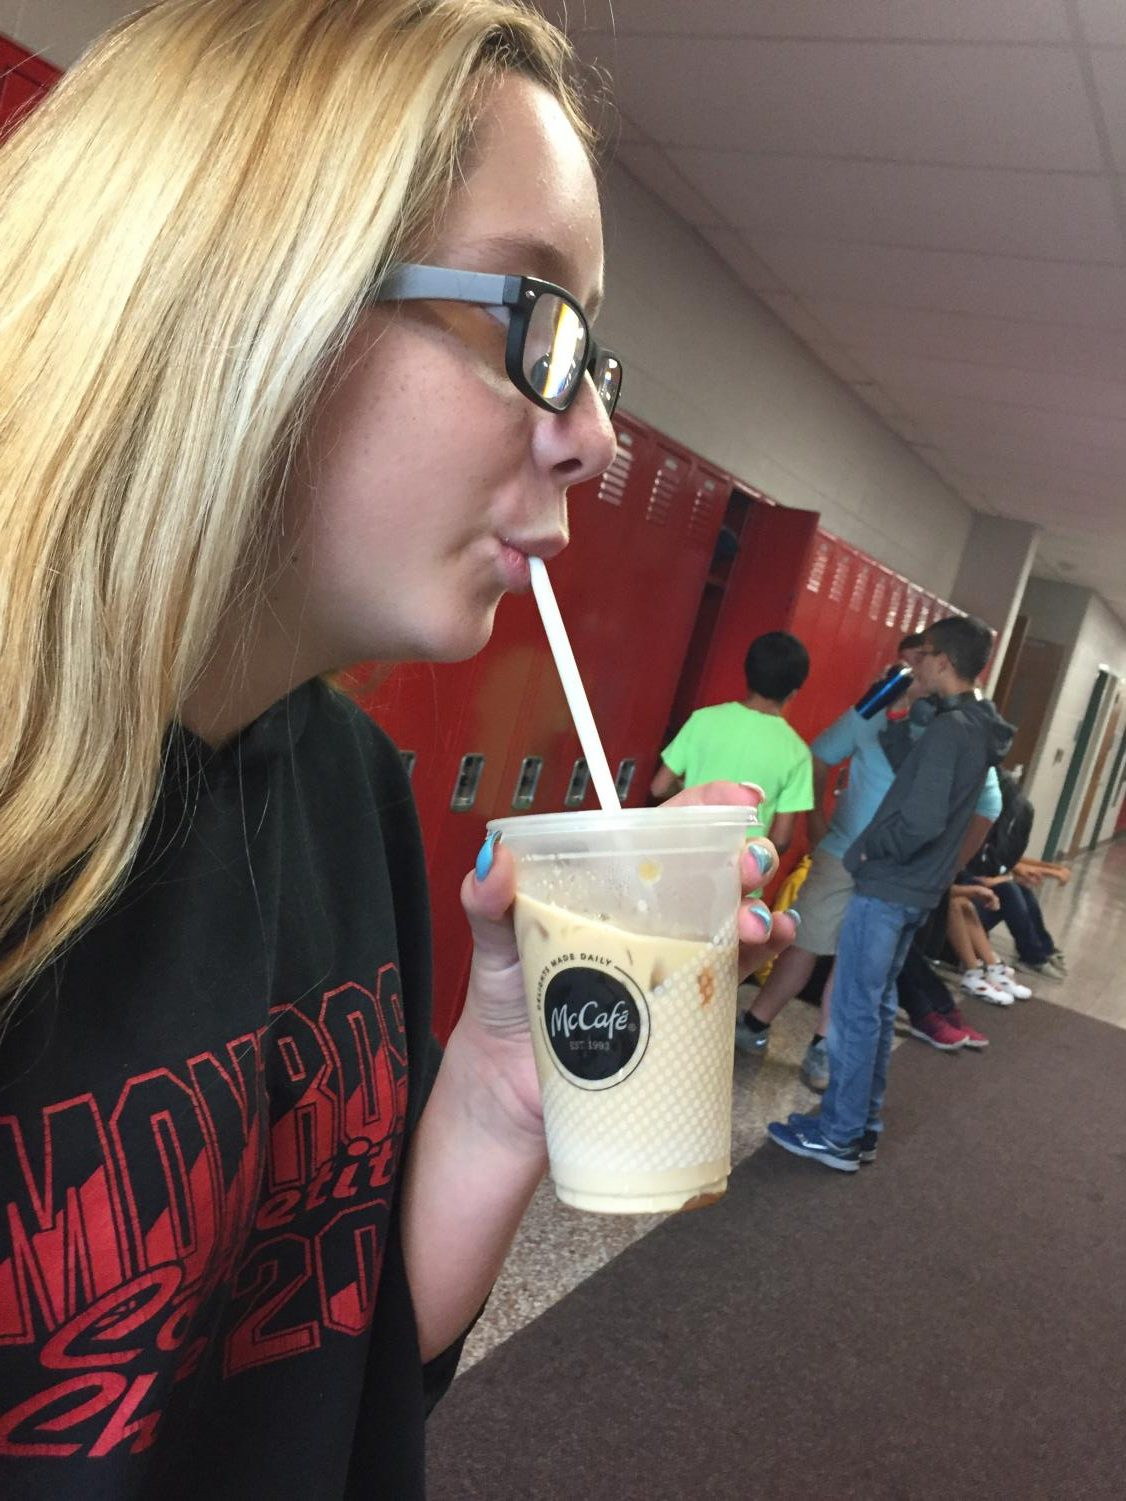 SLHS Student enjoys an iced coffee drink from an outside restaurant.